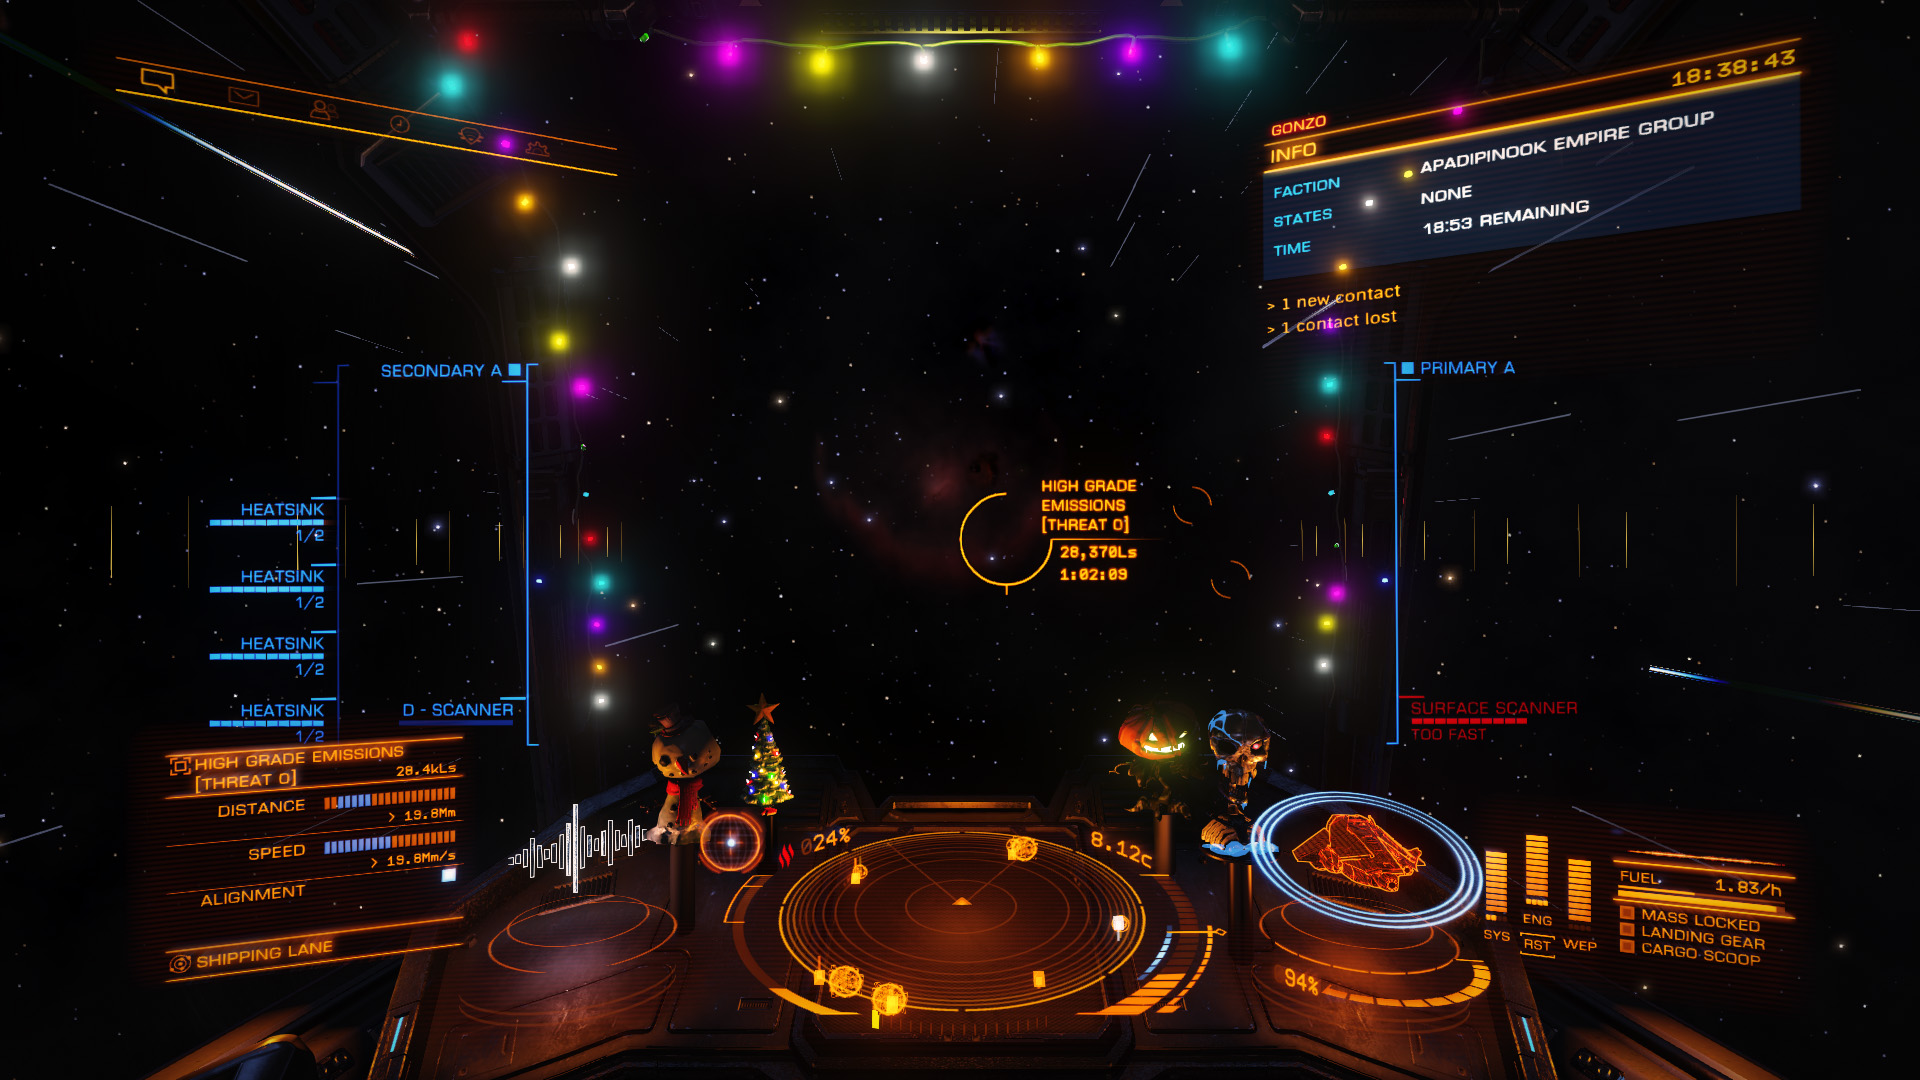 Elite: Dangerous beginner's guide: a screenshot of what a high grade emissions signal source looks like in supercruise